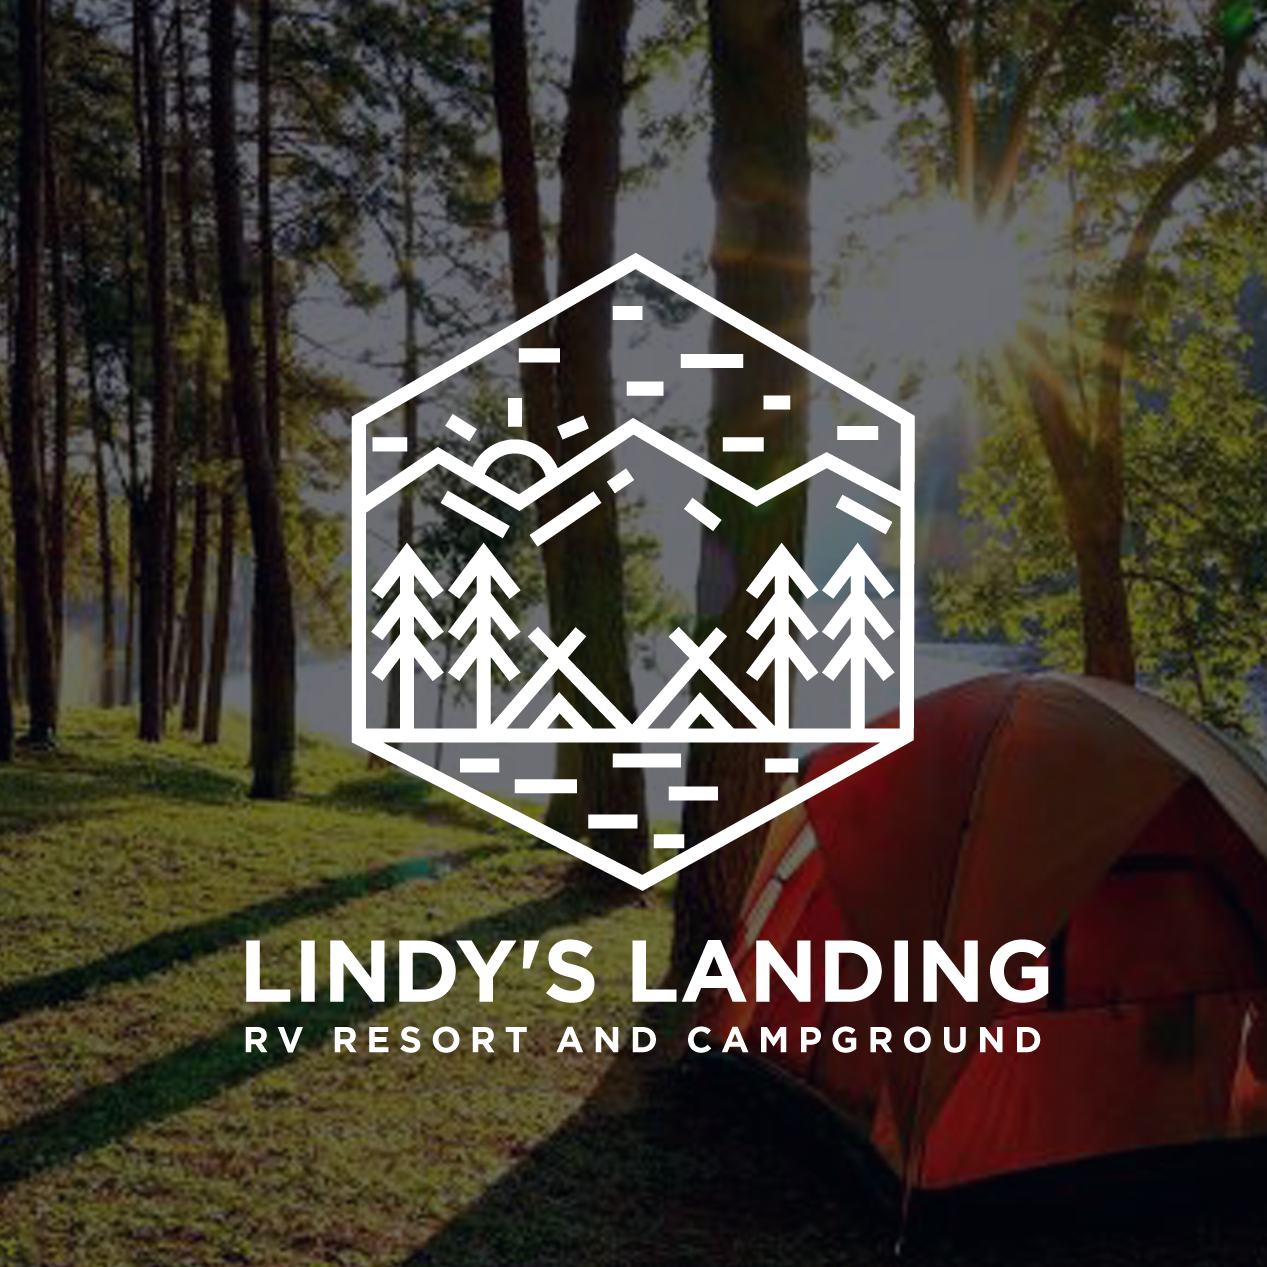 line art logo fro campground